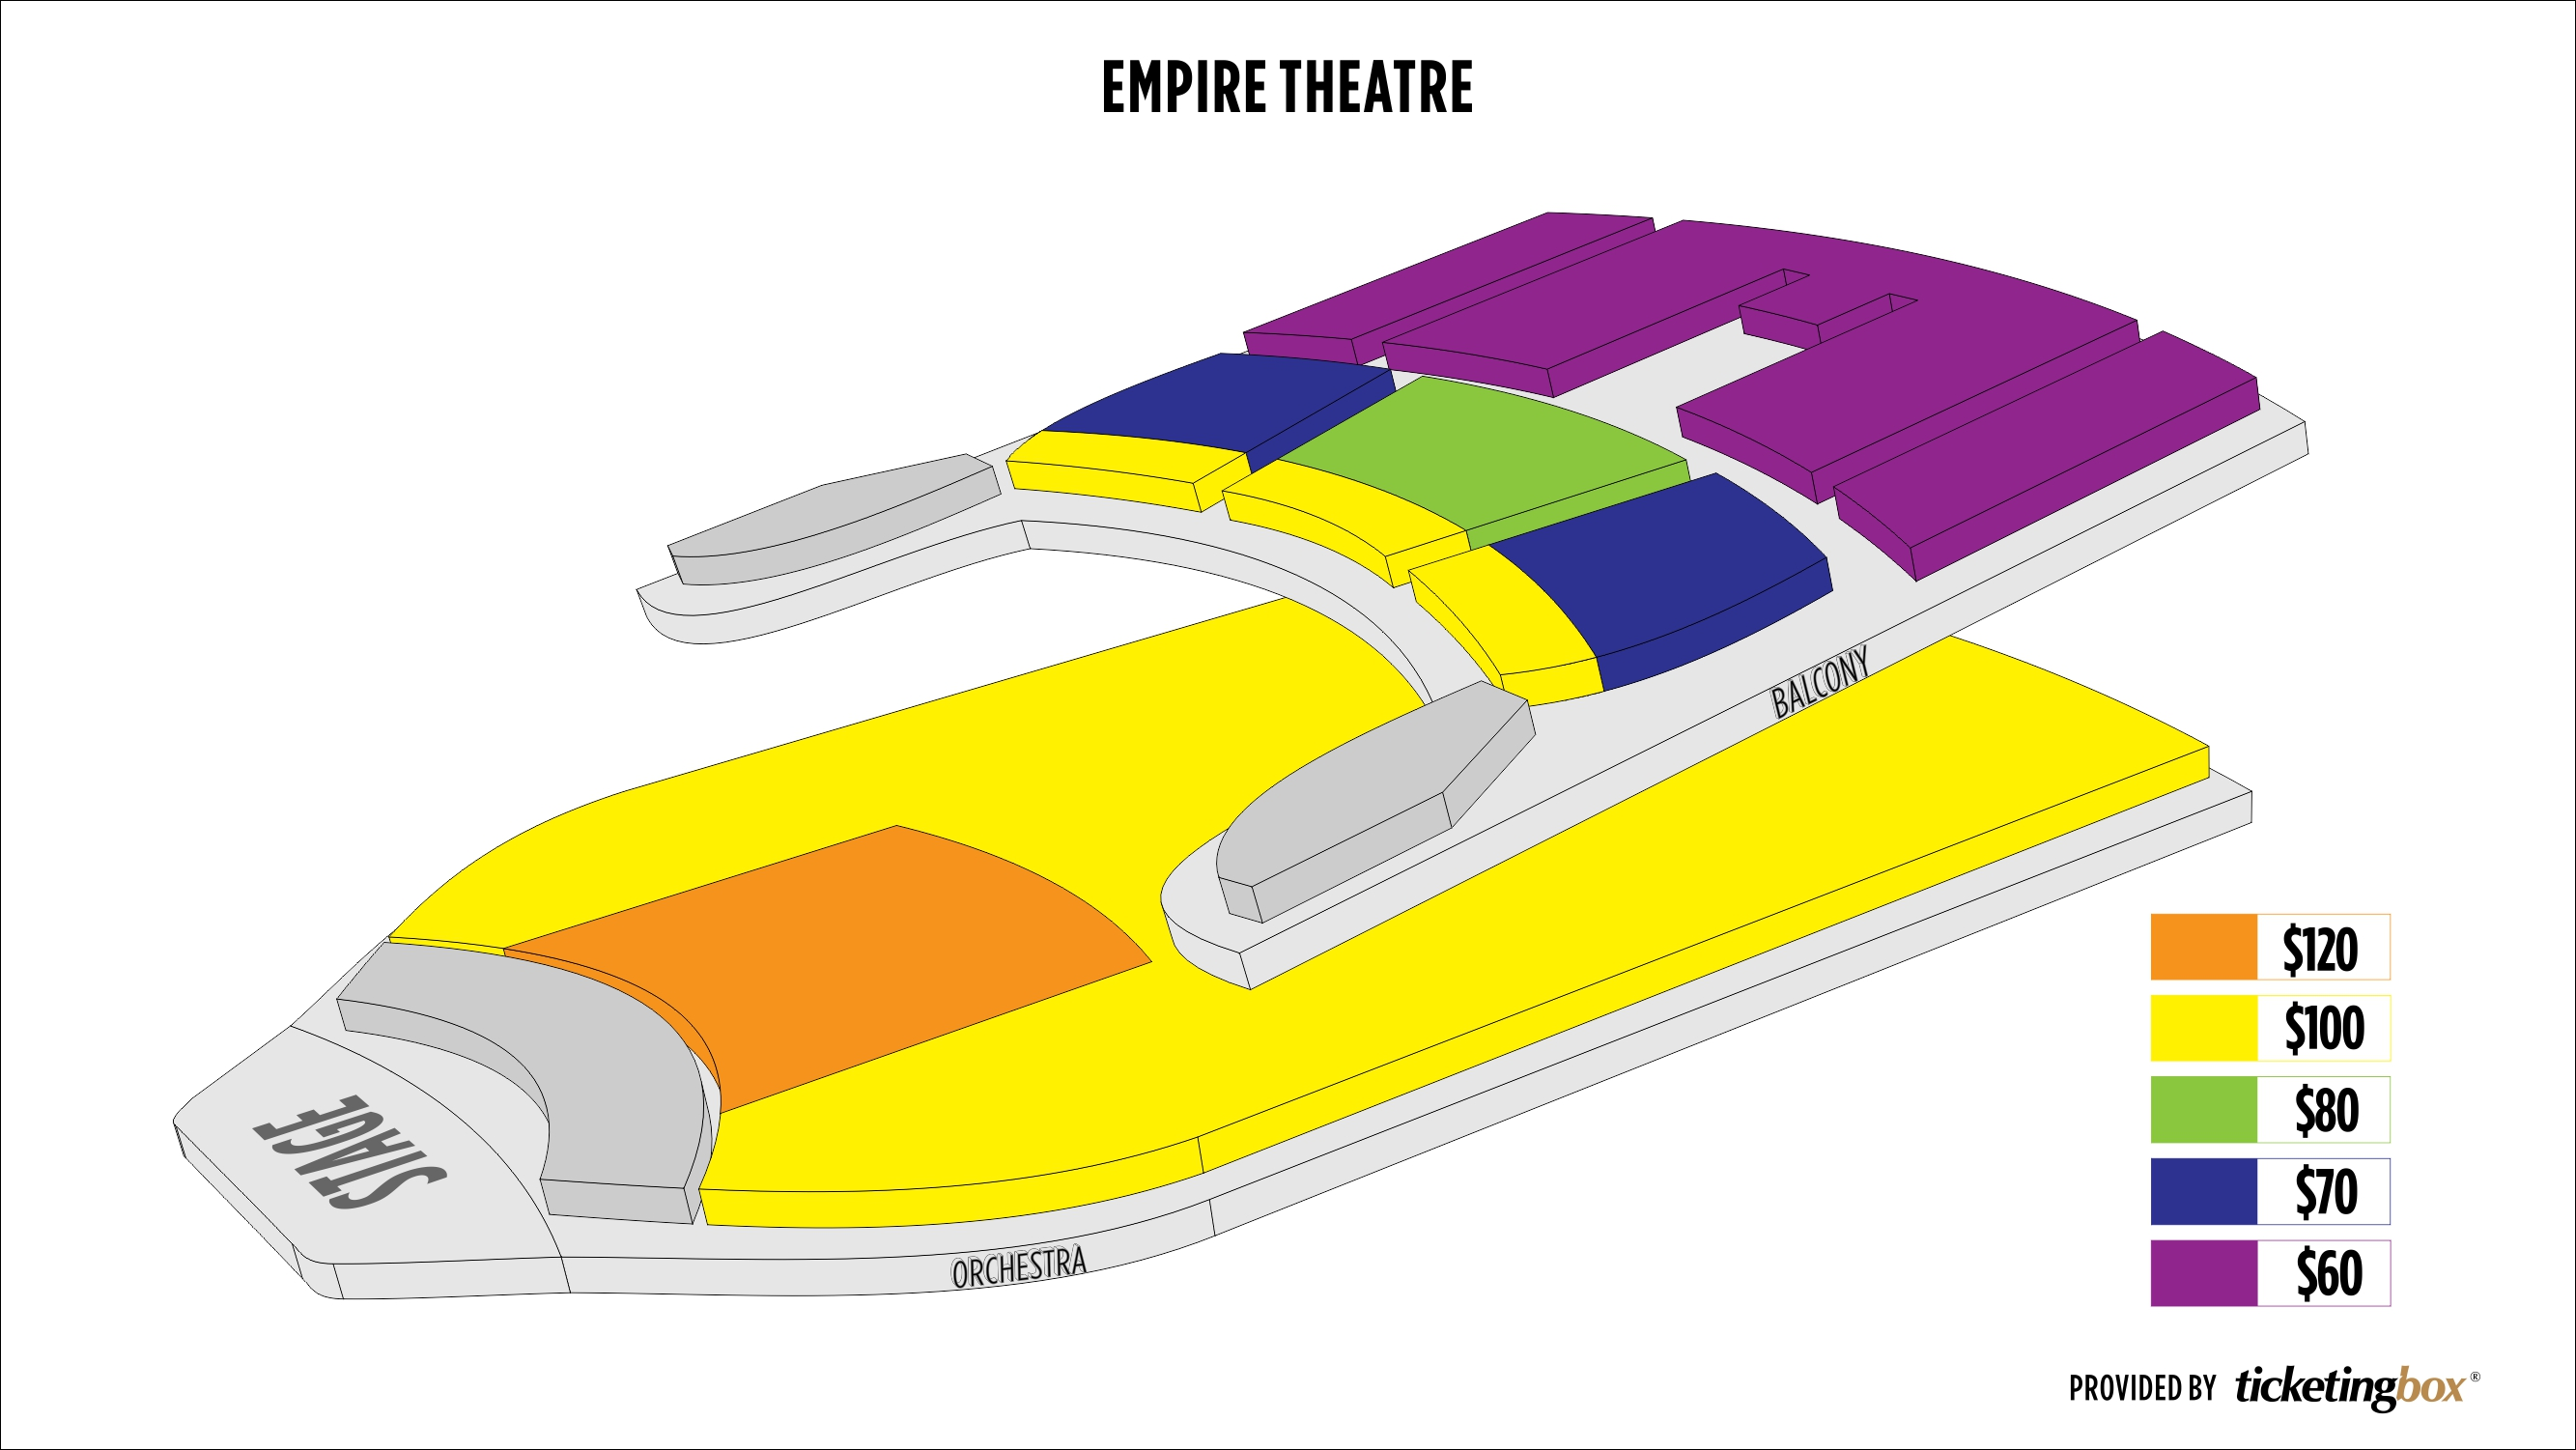 Shen Yun Toowoomba Empire Theatre Seating Chart